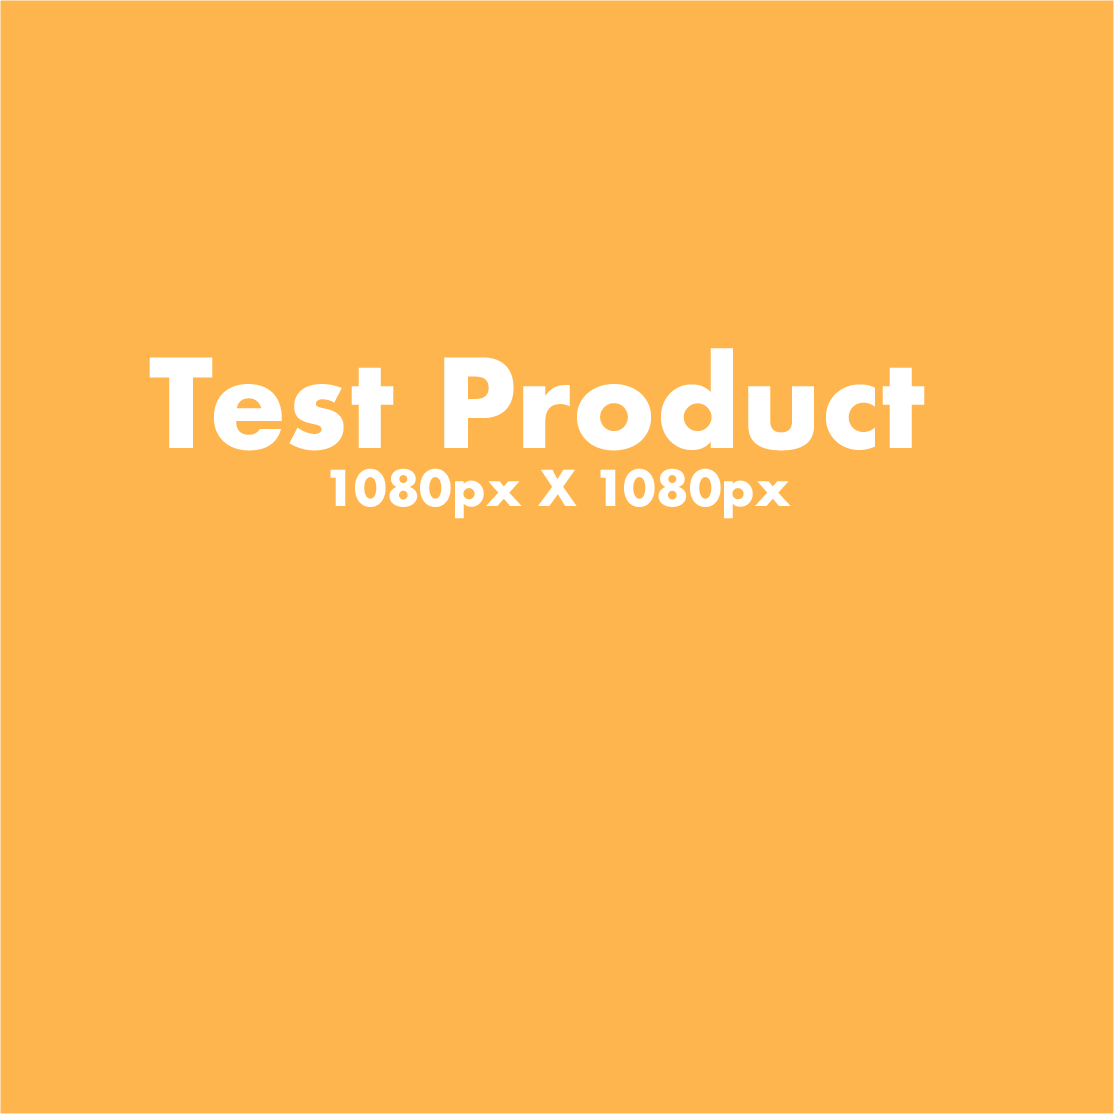 Ira3 Test Product